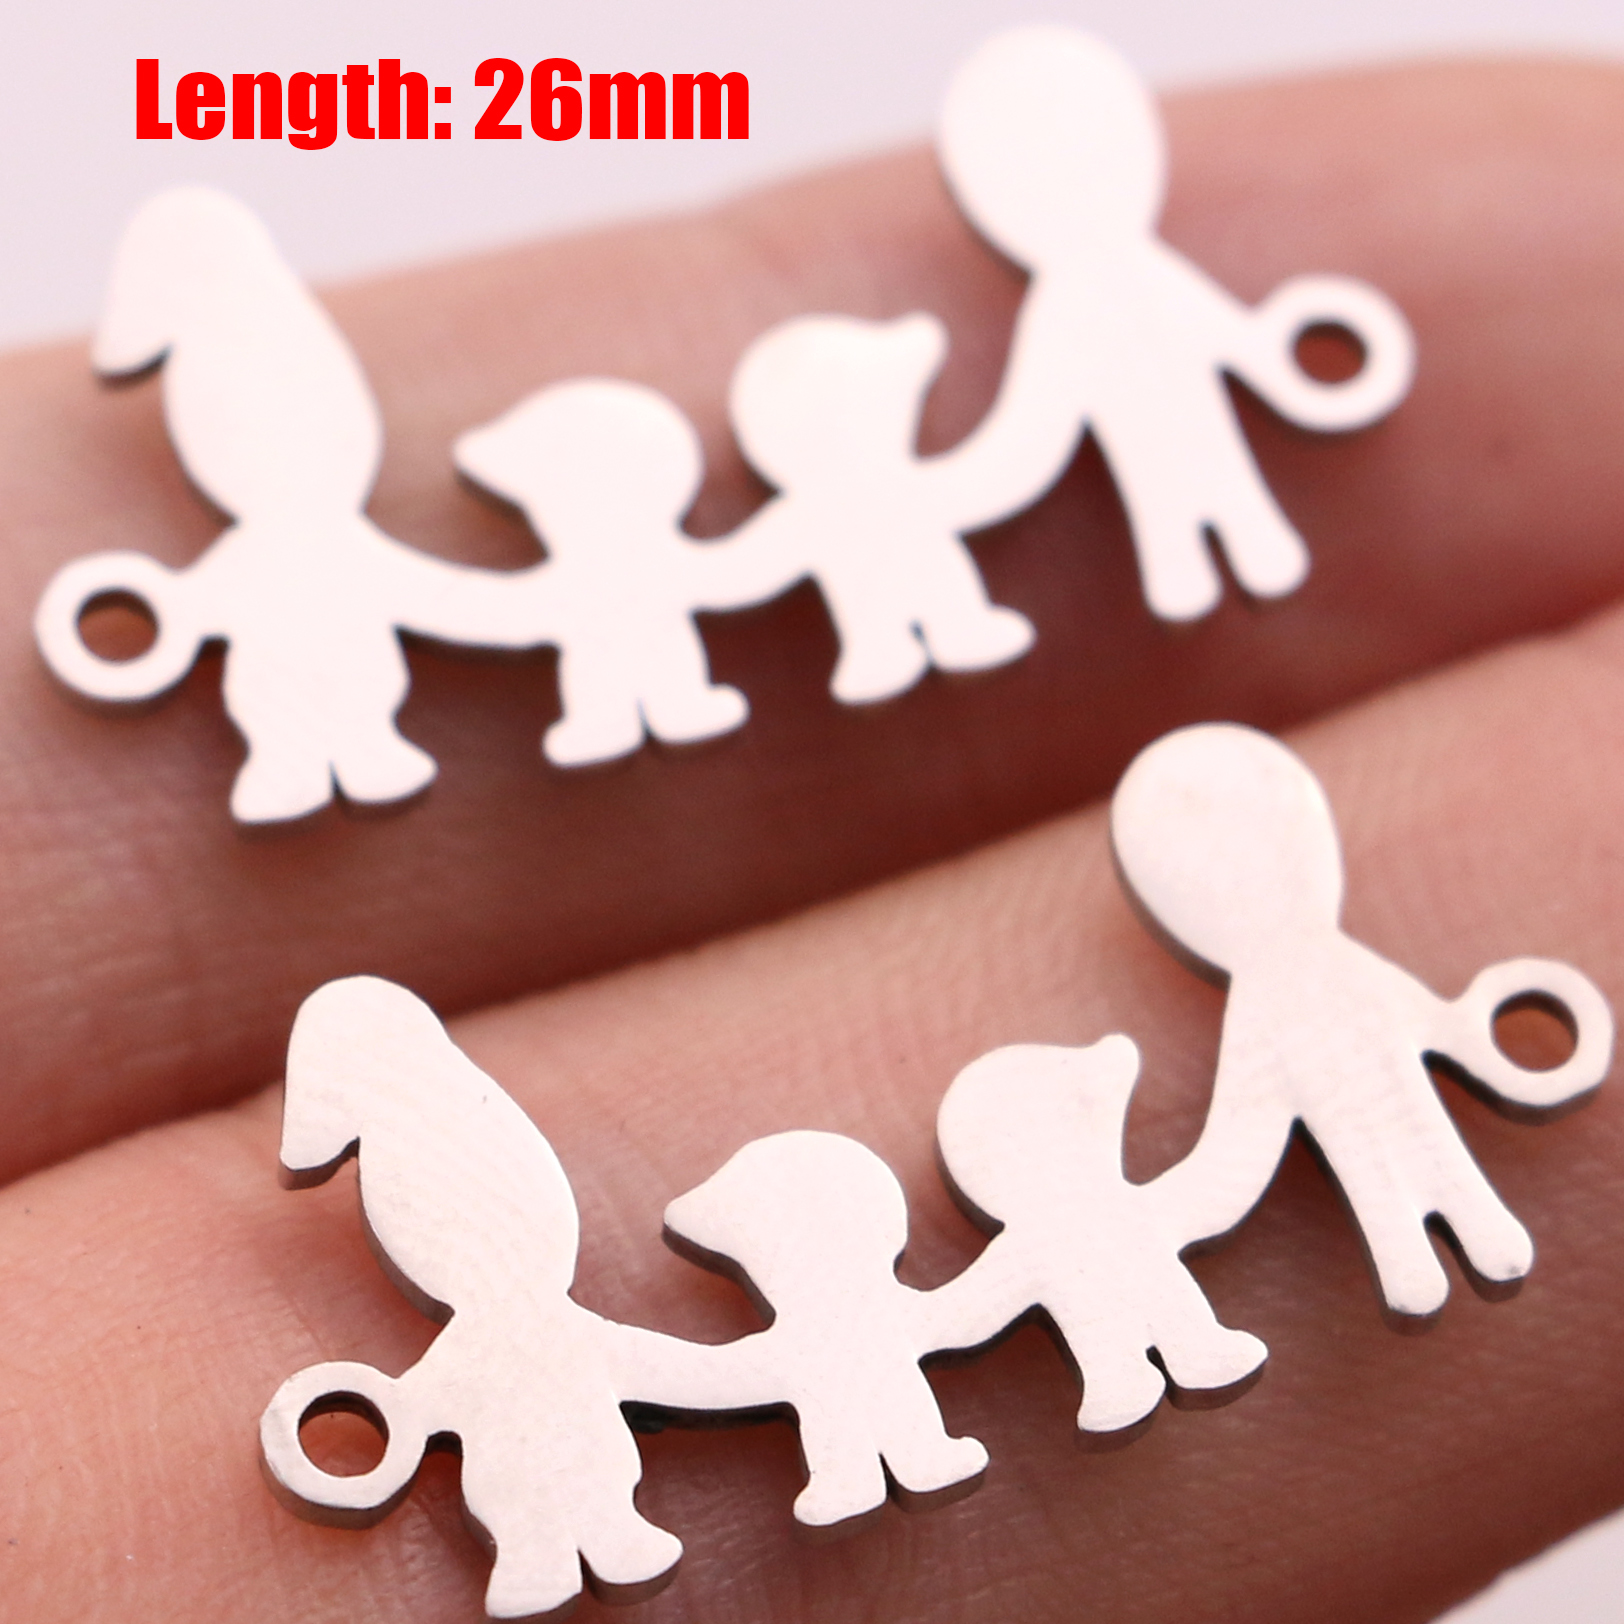 5pcs Family Chain Stainless Steel Pendant Necklace Parents and Children Necklaces Gold/steel Jewelry Gift for Mom Dad New Twice - Цвет: Steel 36